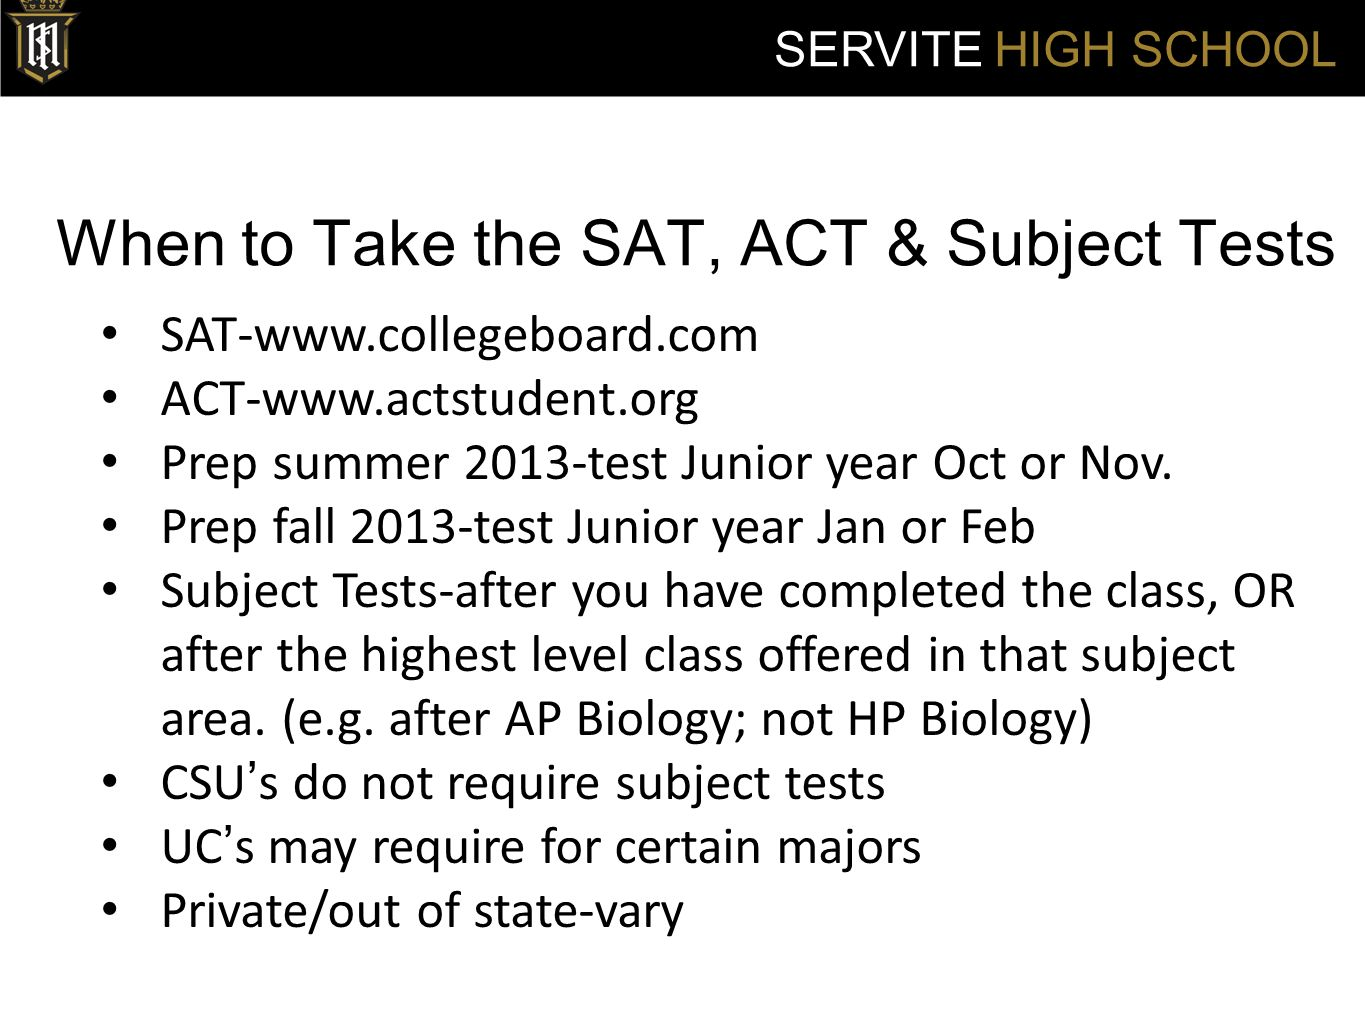 When to Take the SAT, ACT & Subject Tests SERVITE HIGH SCHOOL SAT-www.collegeboard.com ACT-www.actstudent.org Prep summer 2013-test Junior year Oct or